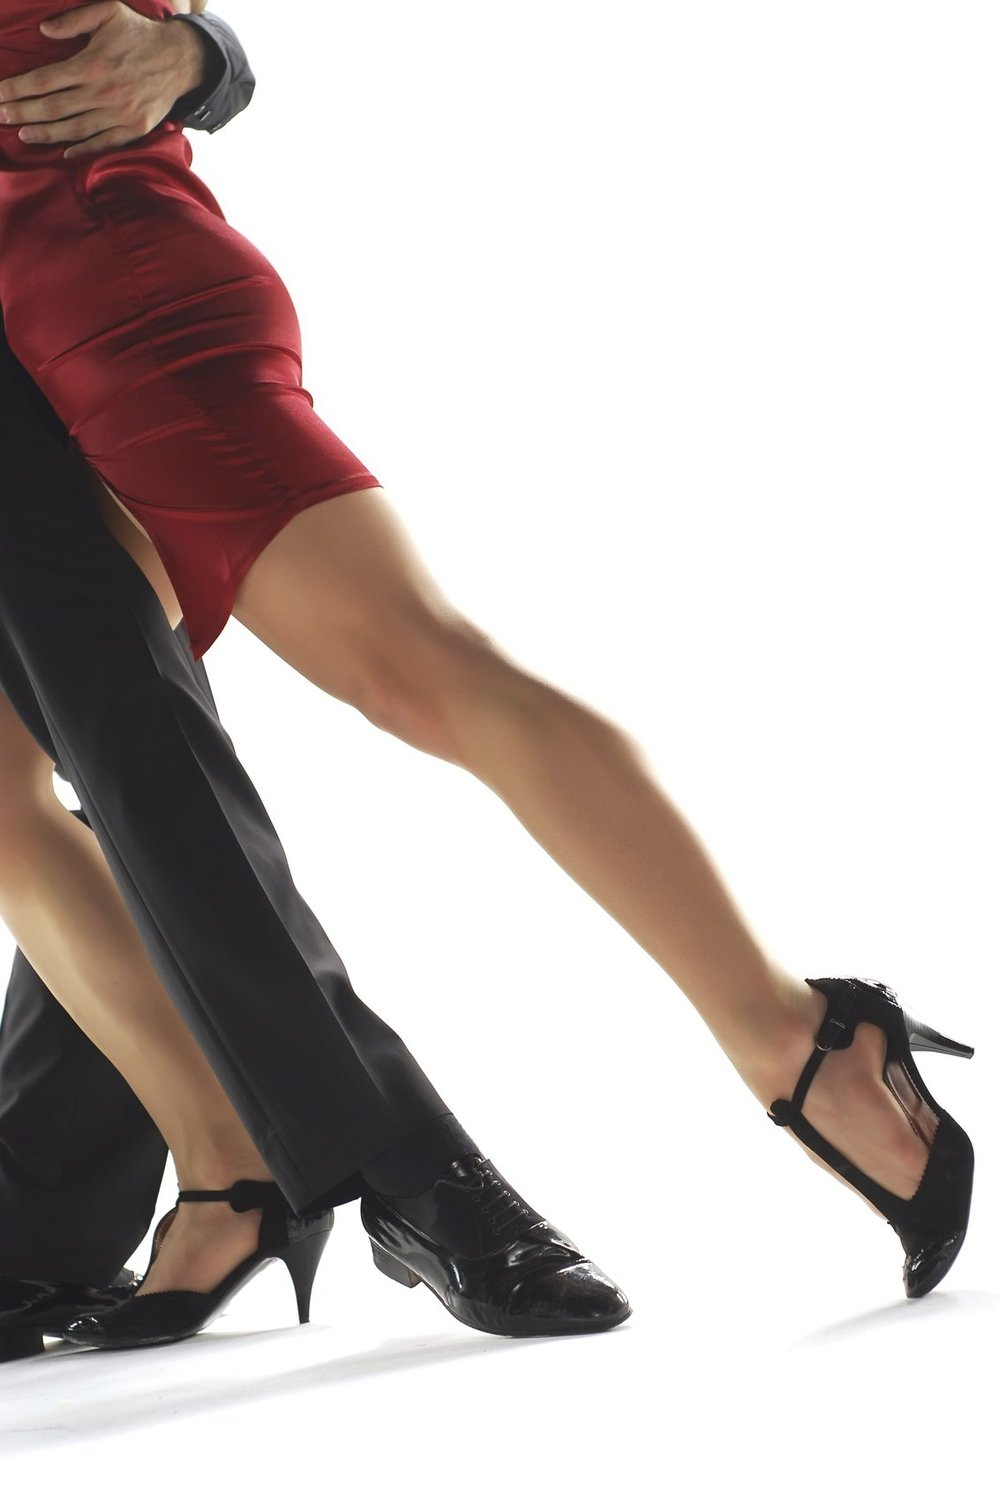 Great ballroom dance shoes should be chic, but also comfortable, flexible, and supportive.